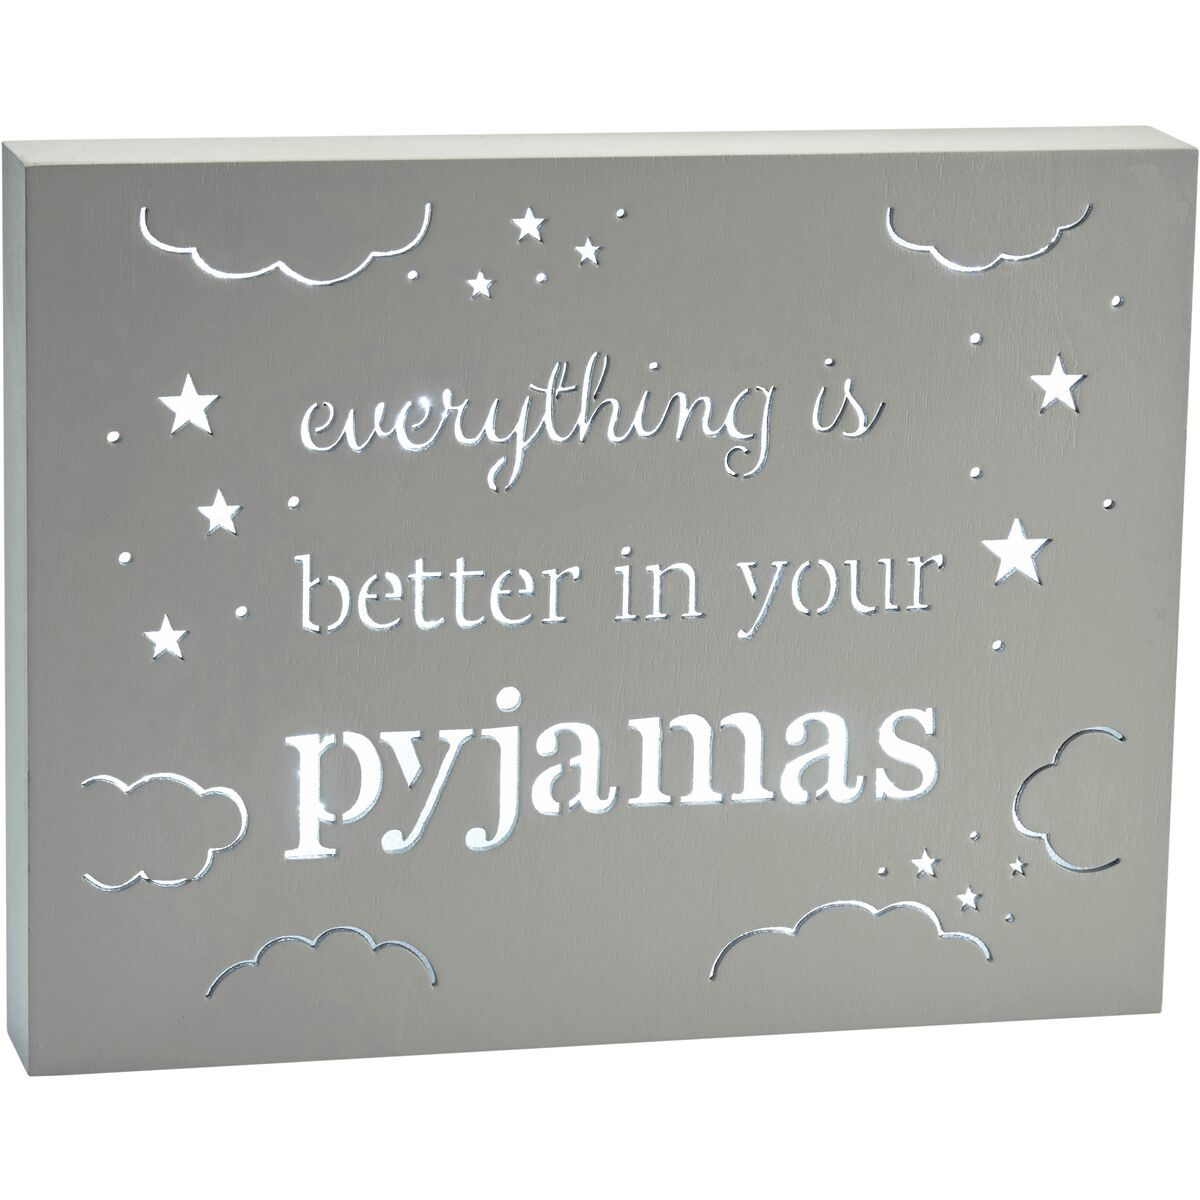 Light Up Plaque - Everything is Better in Your Pajamas image